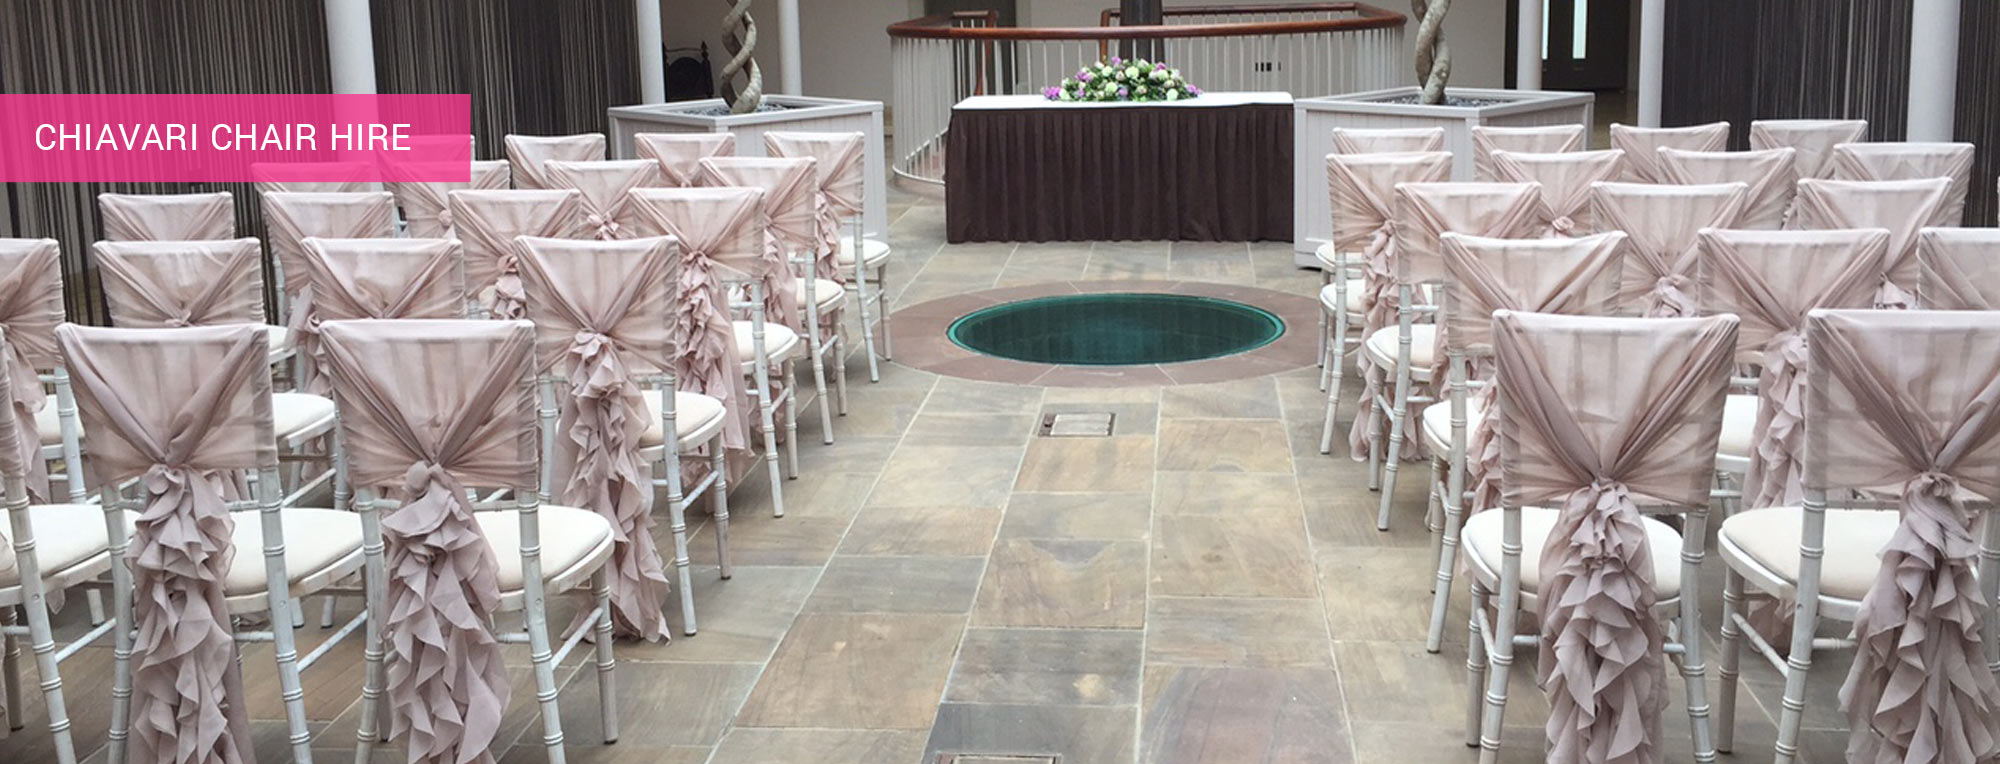 Awe Inspiring Wedding Chair Covers Chiavari Chair Hire Simply Bows Download Free Architecture Designs Scobabritishbridgeorg